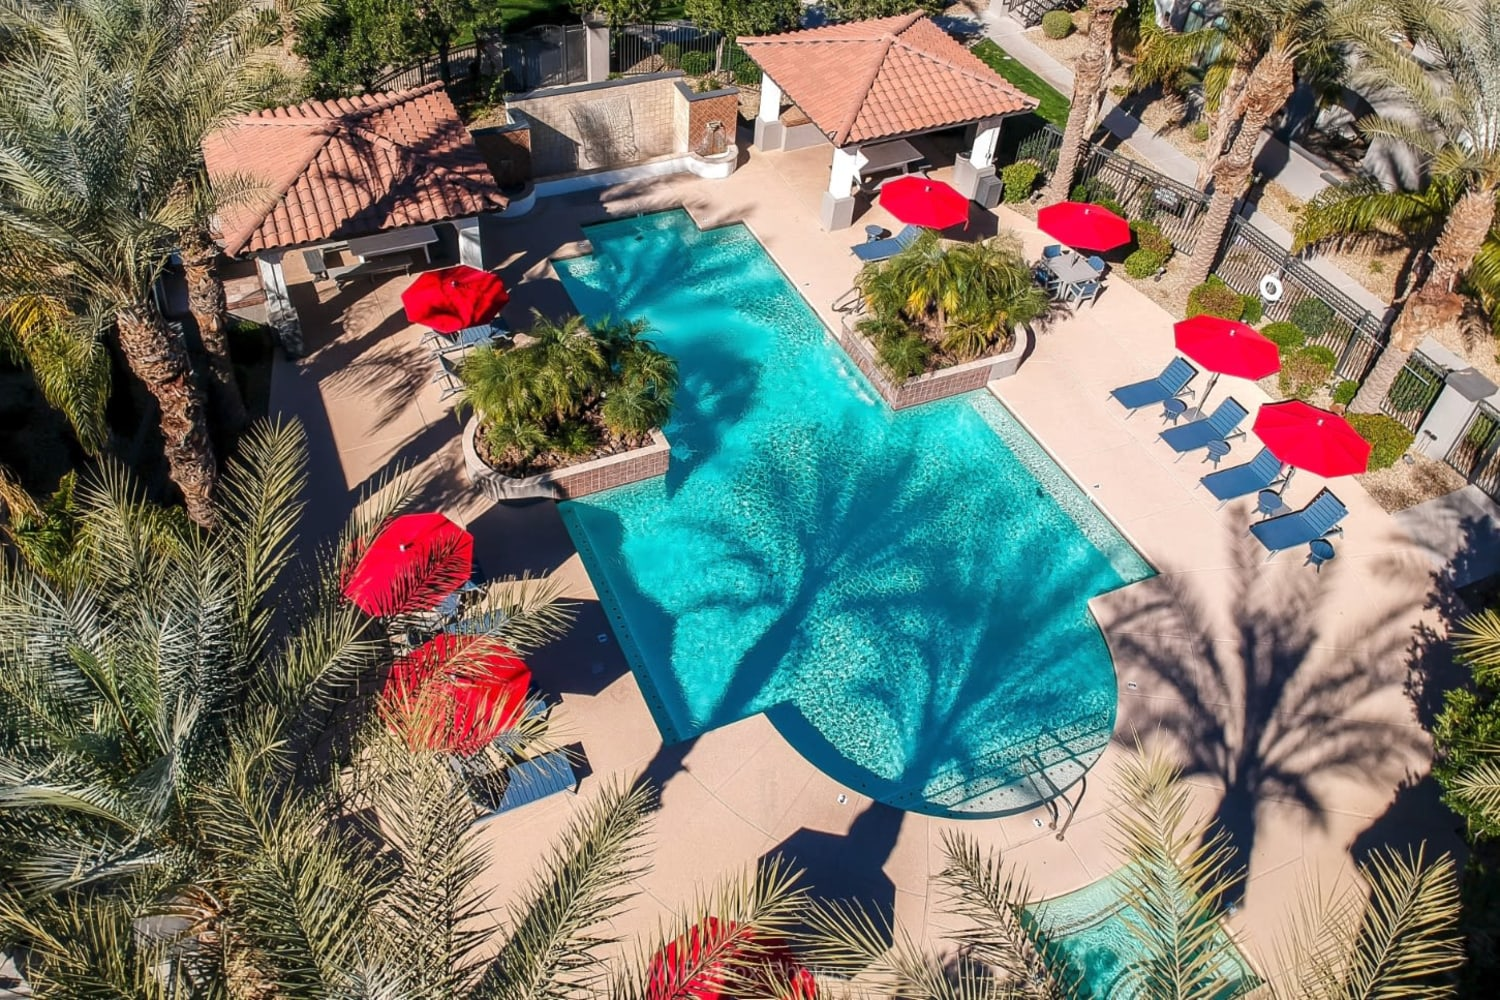 Dobson 2222 in Chandler, Arizona, offers a swimming pool with beach chairs and umbrellas